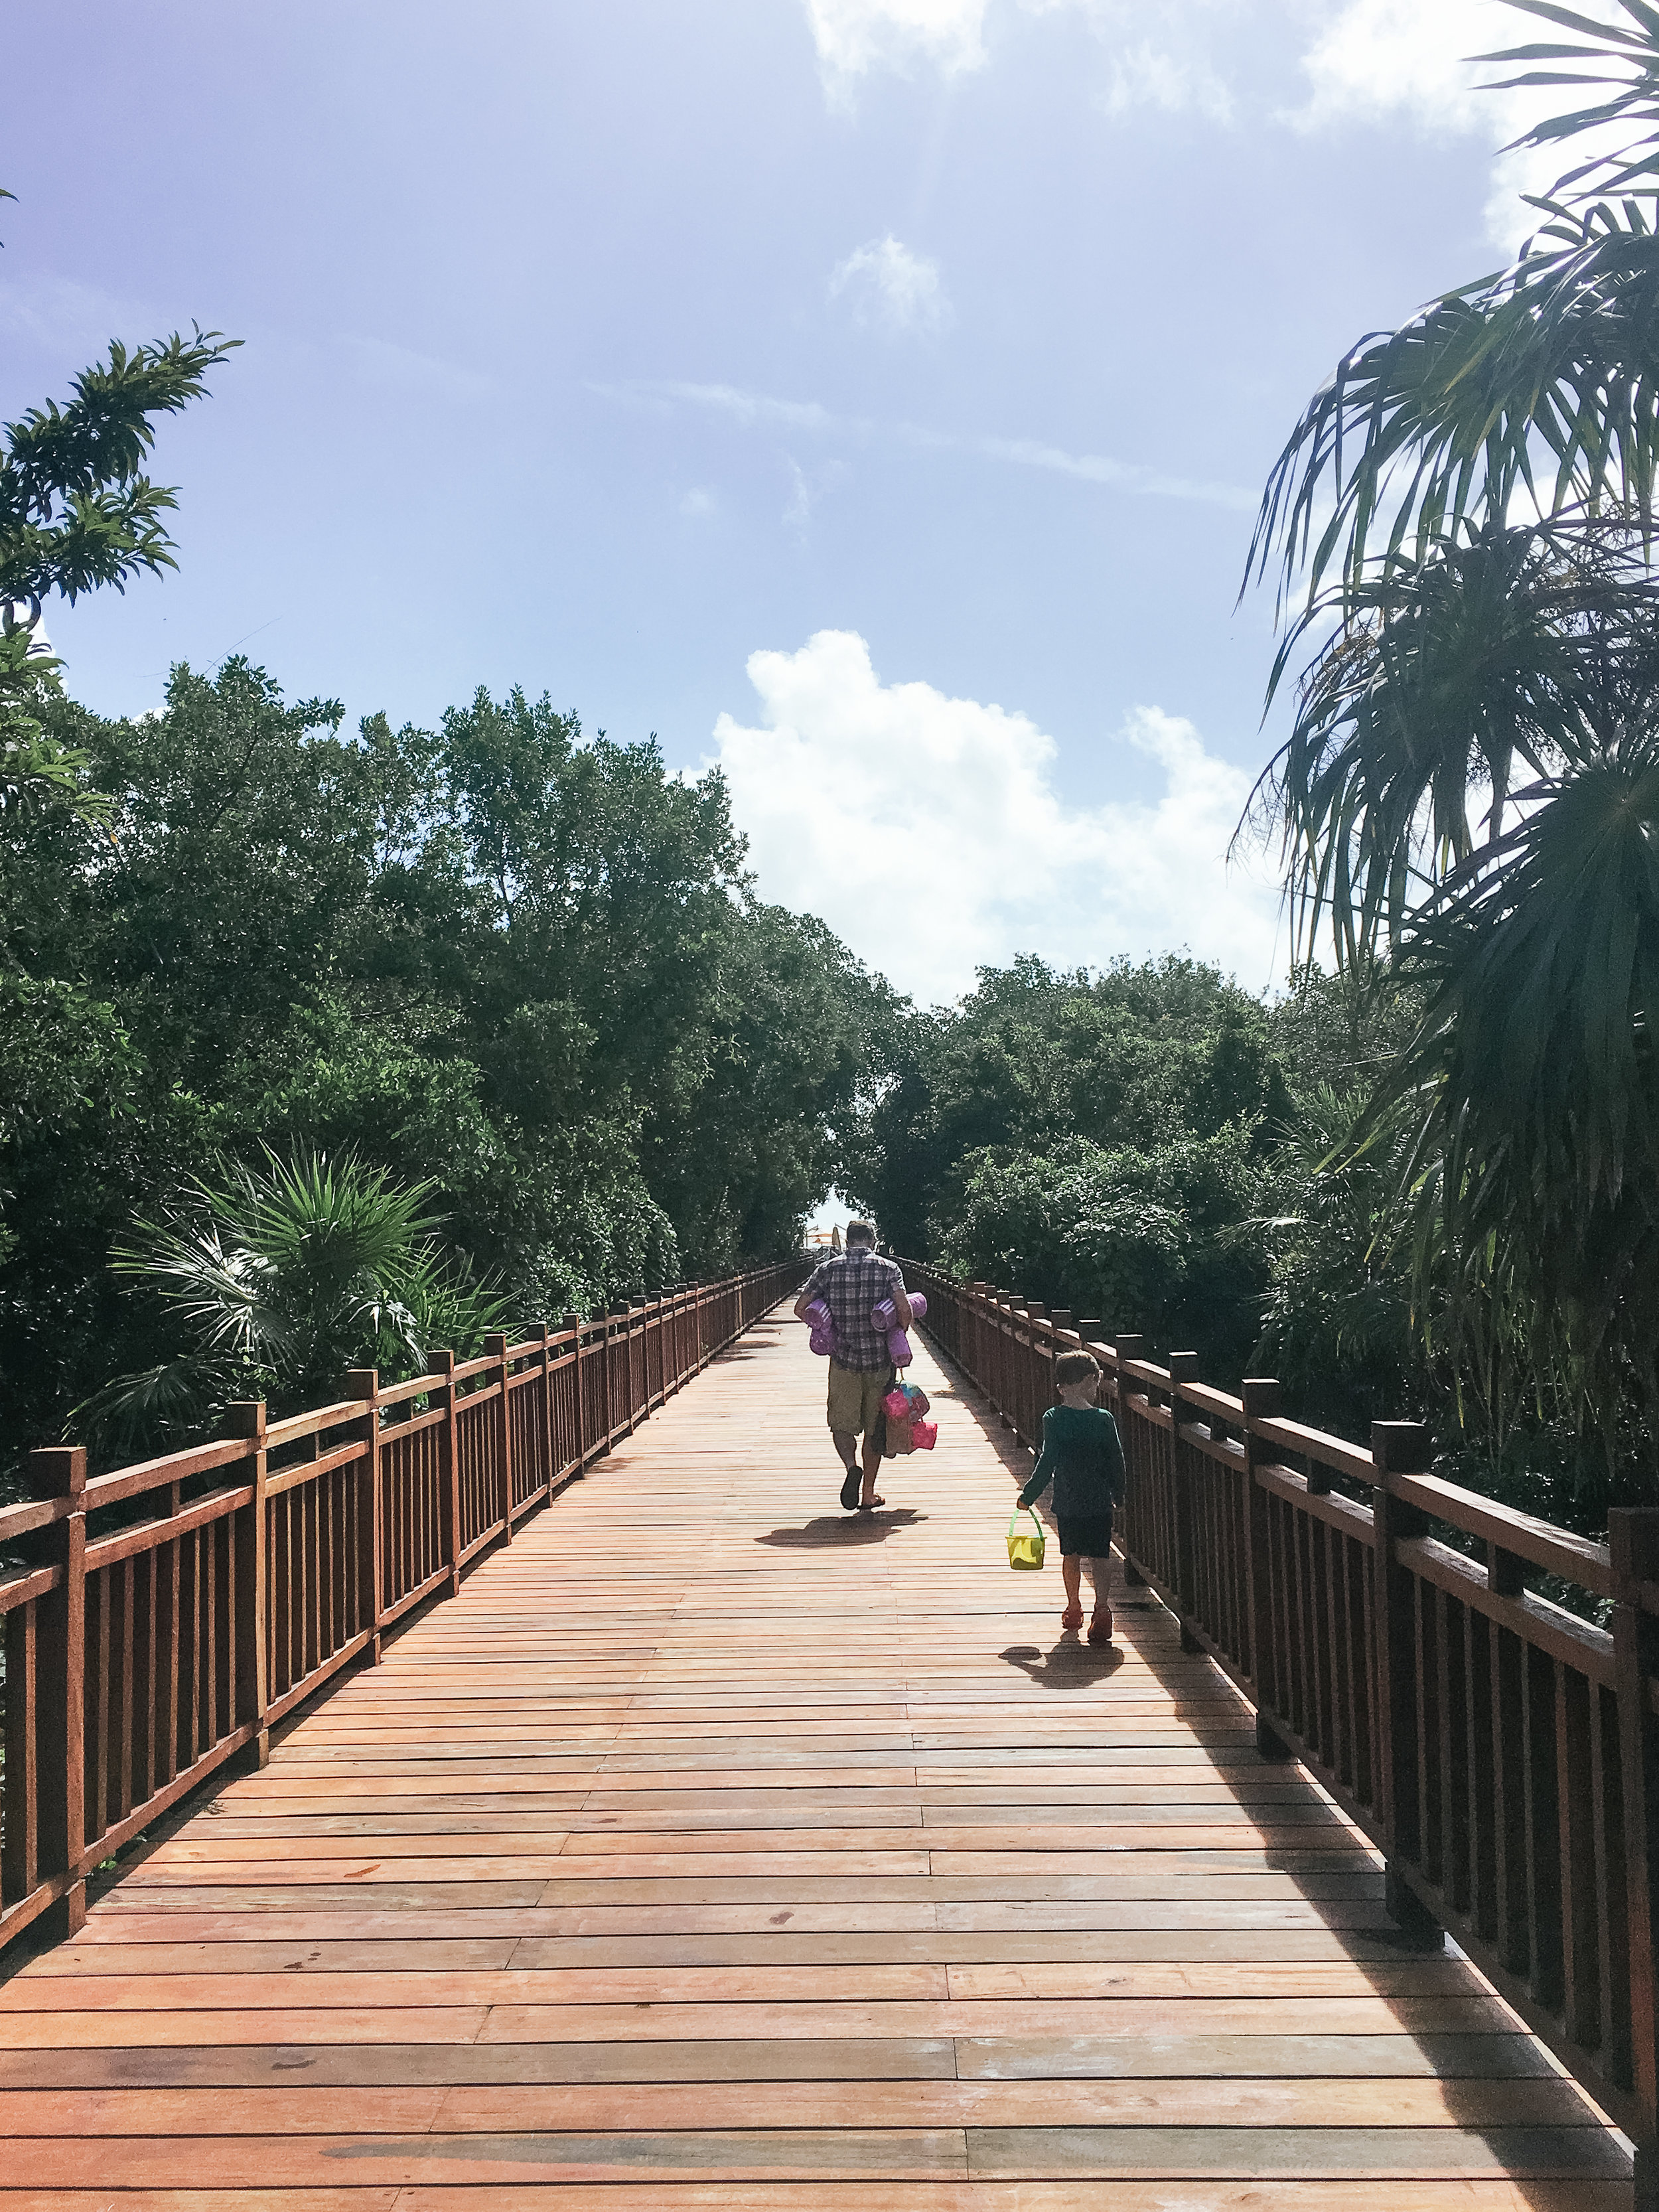 Heading to the beach on one of the many boardwalks that cut through the mangroves.